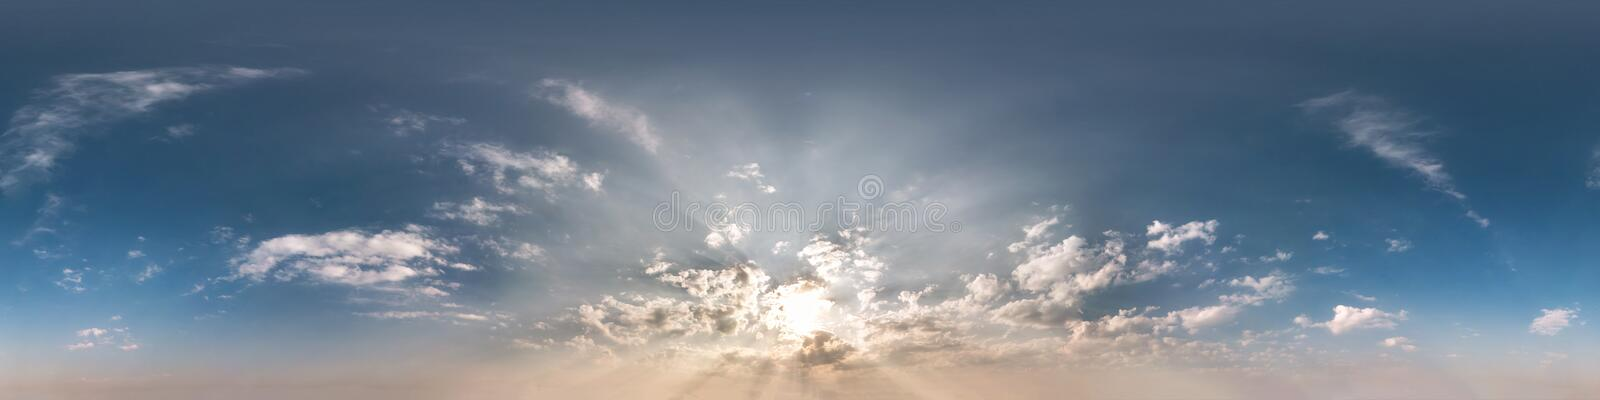 Seamless cloudy blue sky before sunset hdri panorama 360 degrees angle view with zenith and beautiful clouds for use in 3d. Graphics as sky dome or edit drone stock images